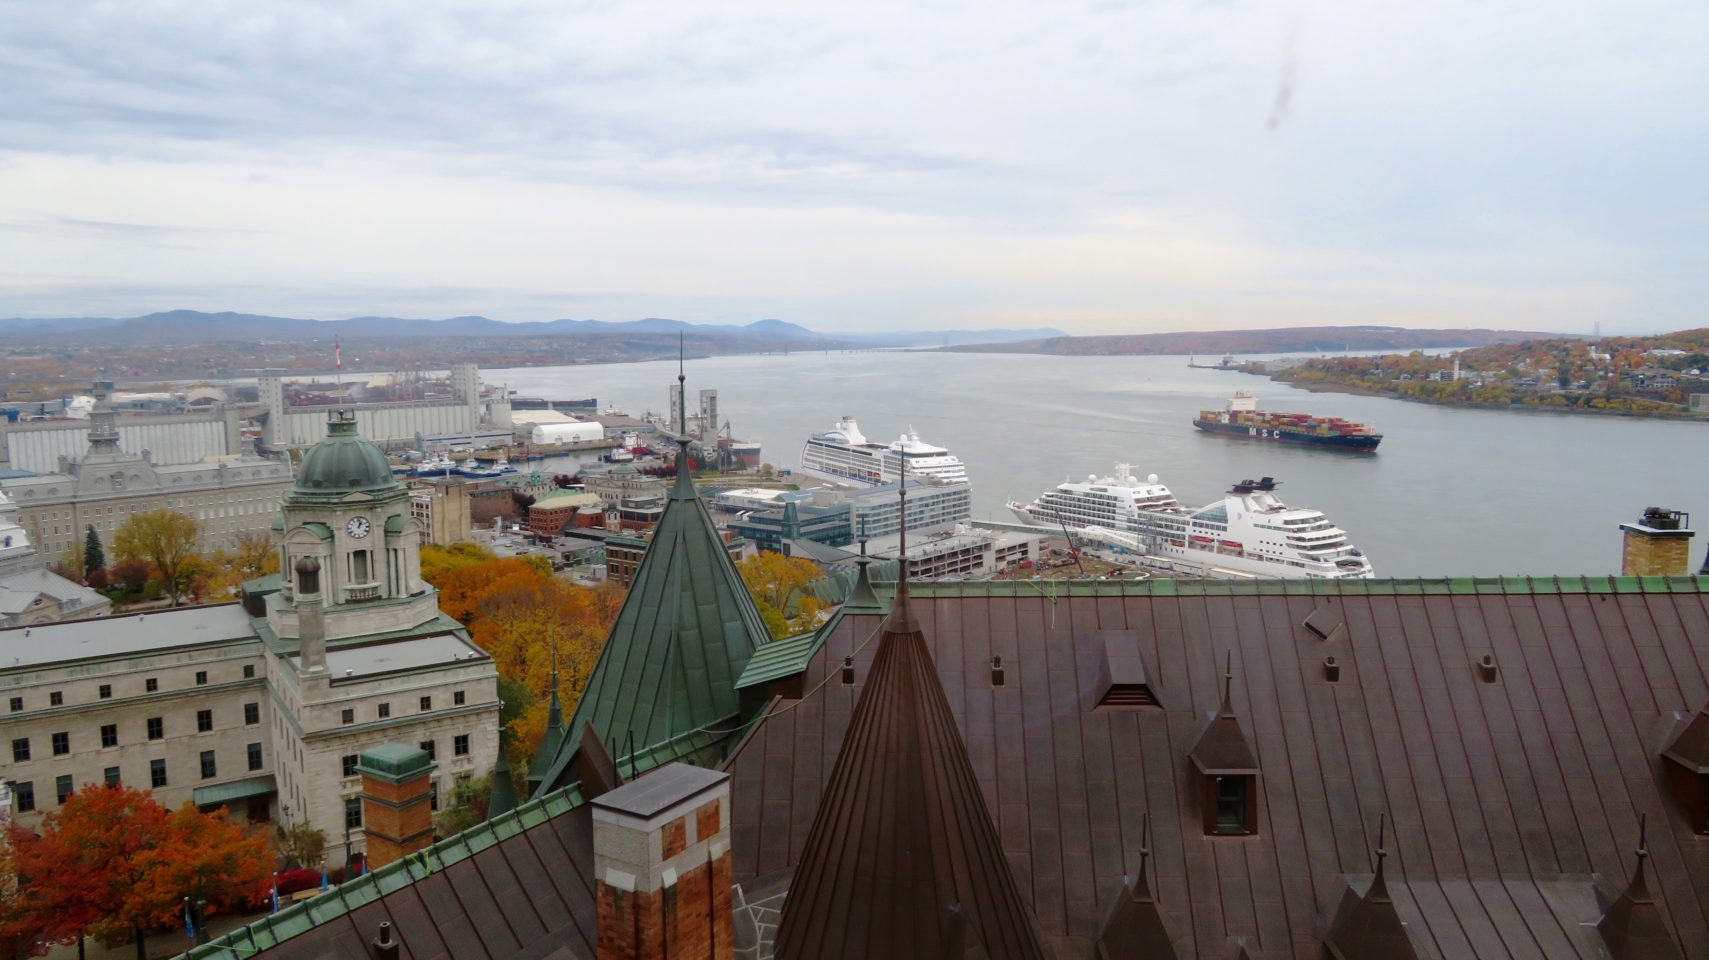 View of Quebec City, Levis and Ile d'Orleans from our guestroom at the Fairmont Le Chateau Frontenac